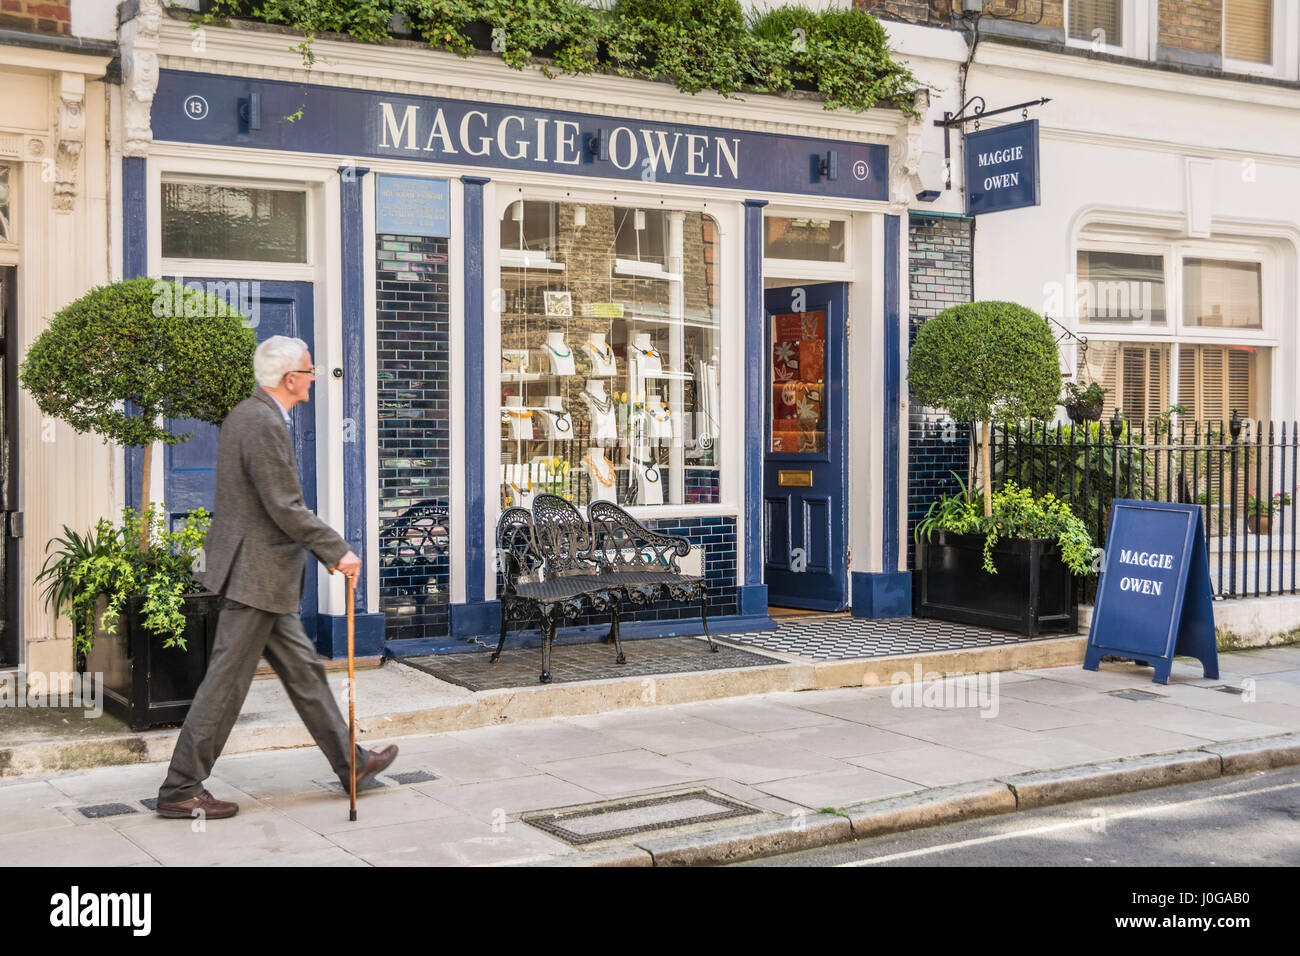 Maggie Owen an independent shop on Rugby Street in Bloomsbury, London, UK - Stock Image